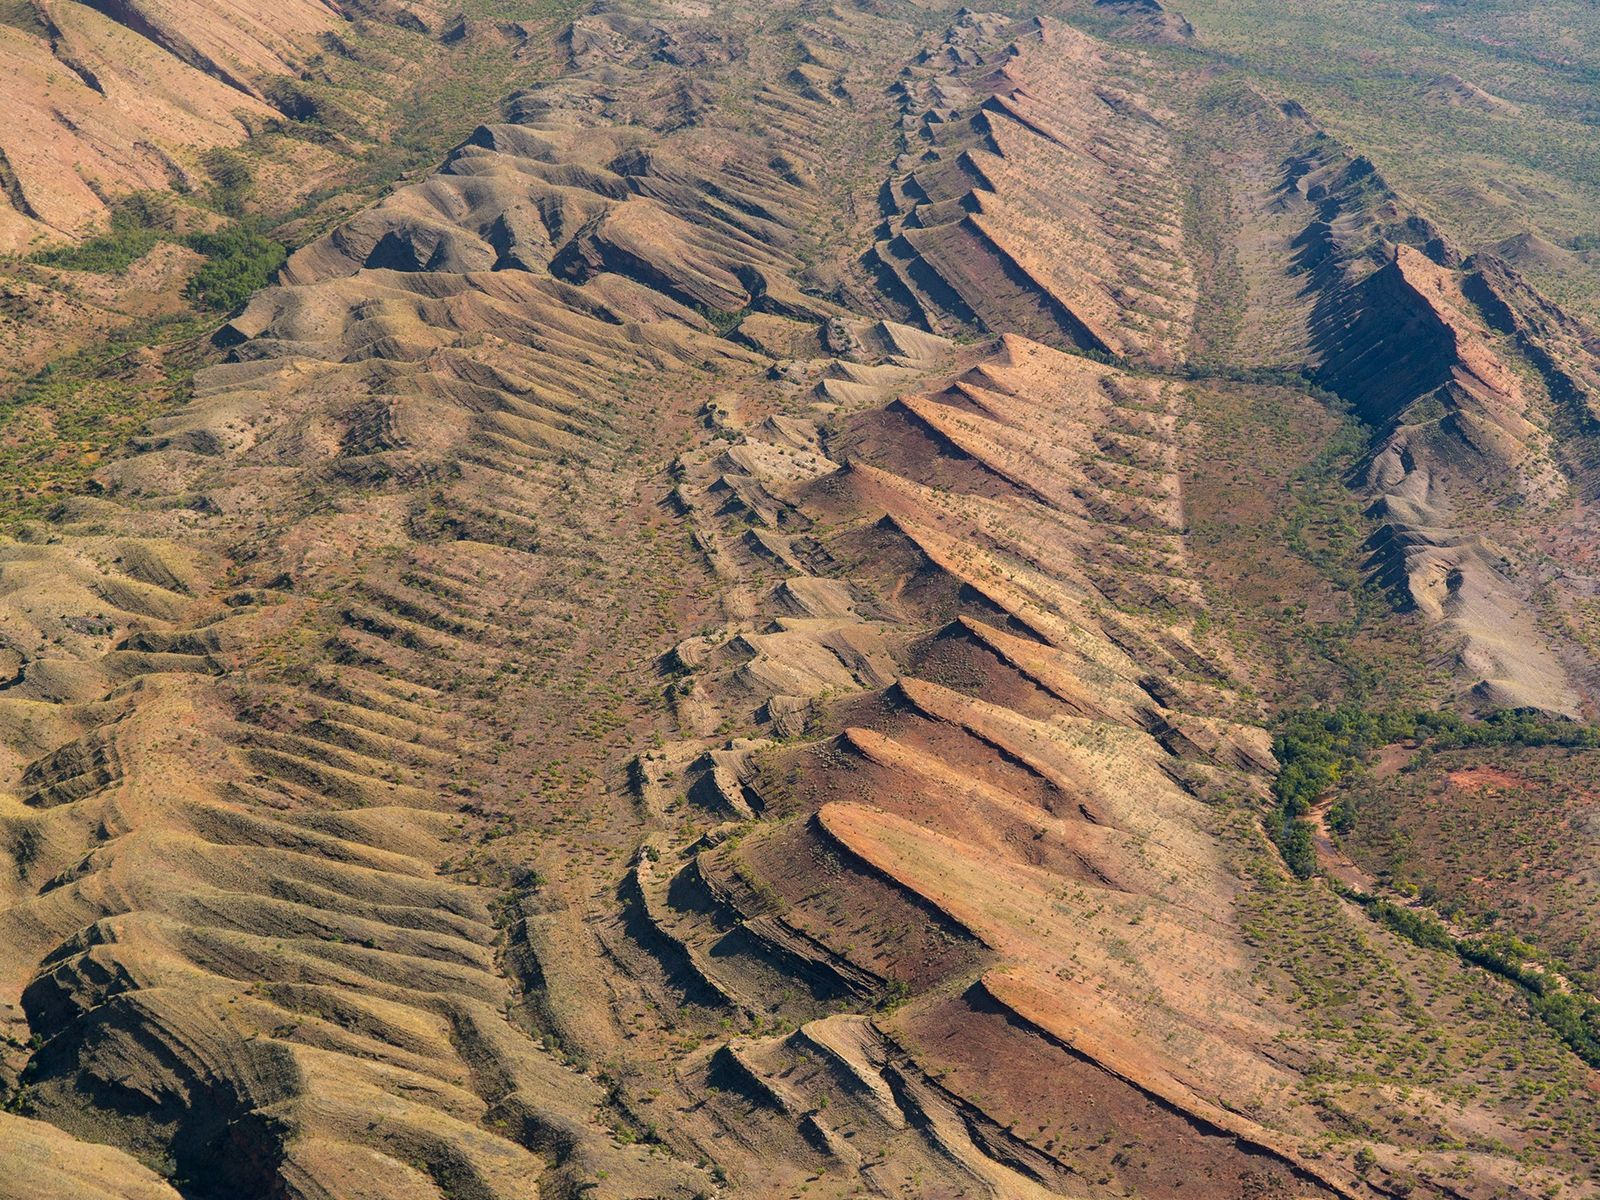 Plate tectonics has crafted the world as we know it, from the depths of the ocean ...